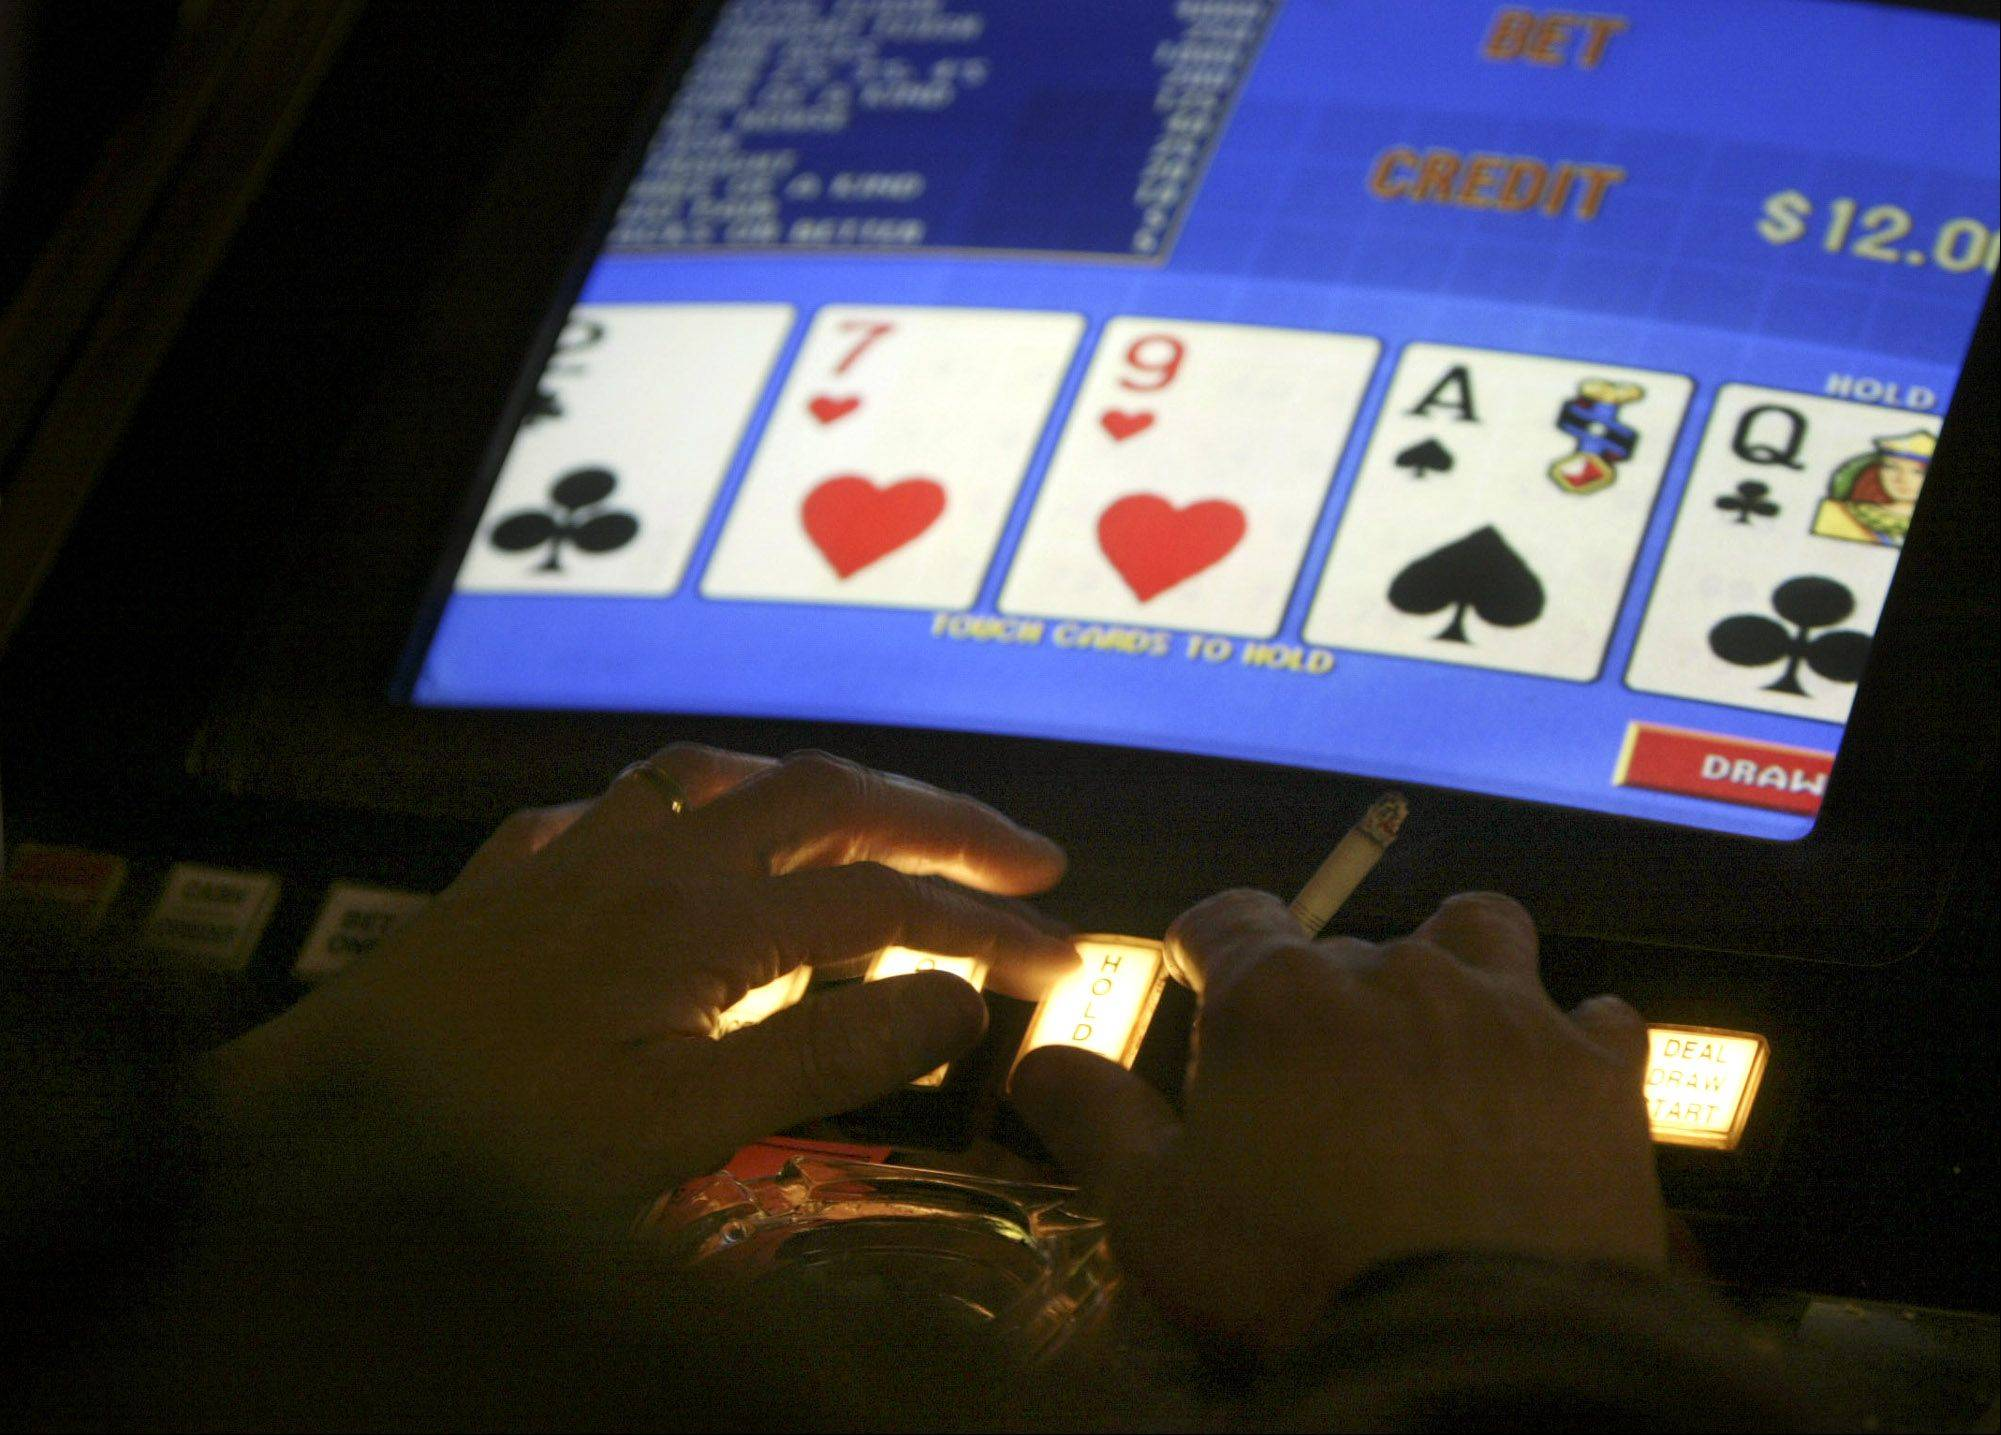 Five video gambling terminals could be coming to the Fox Run Golf Links clubhouse in Elk Grove Village if approved by the Illinois Gaming Board. If the licenses are granted, Fox Run would be the first publicly-owned course to allow video gambling.